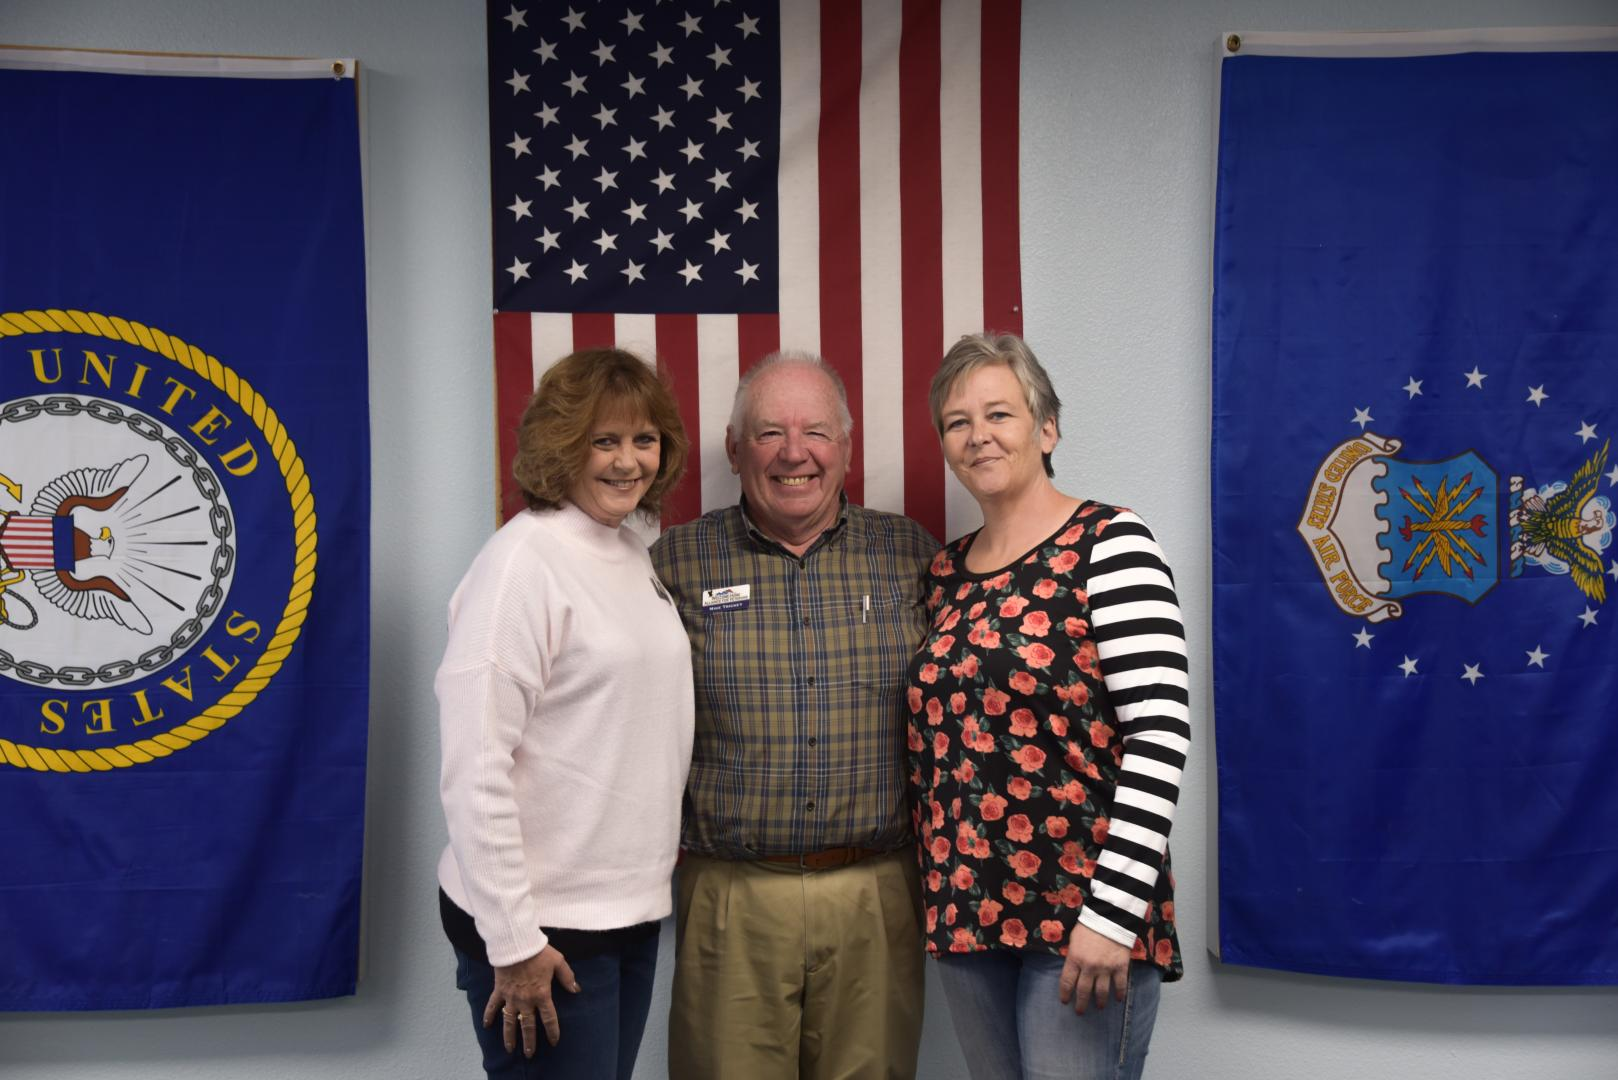 Amy Eifling, Mike Trickey, April Heard of Welcome Alliance for Veterans, Montrose CO